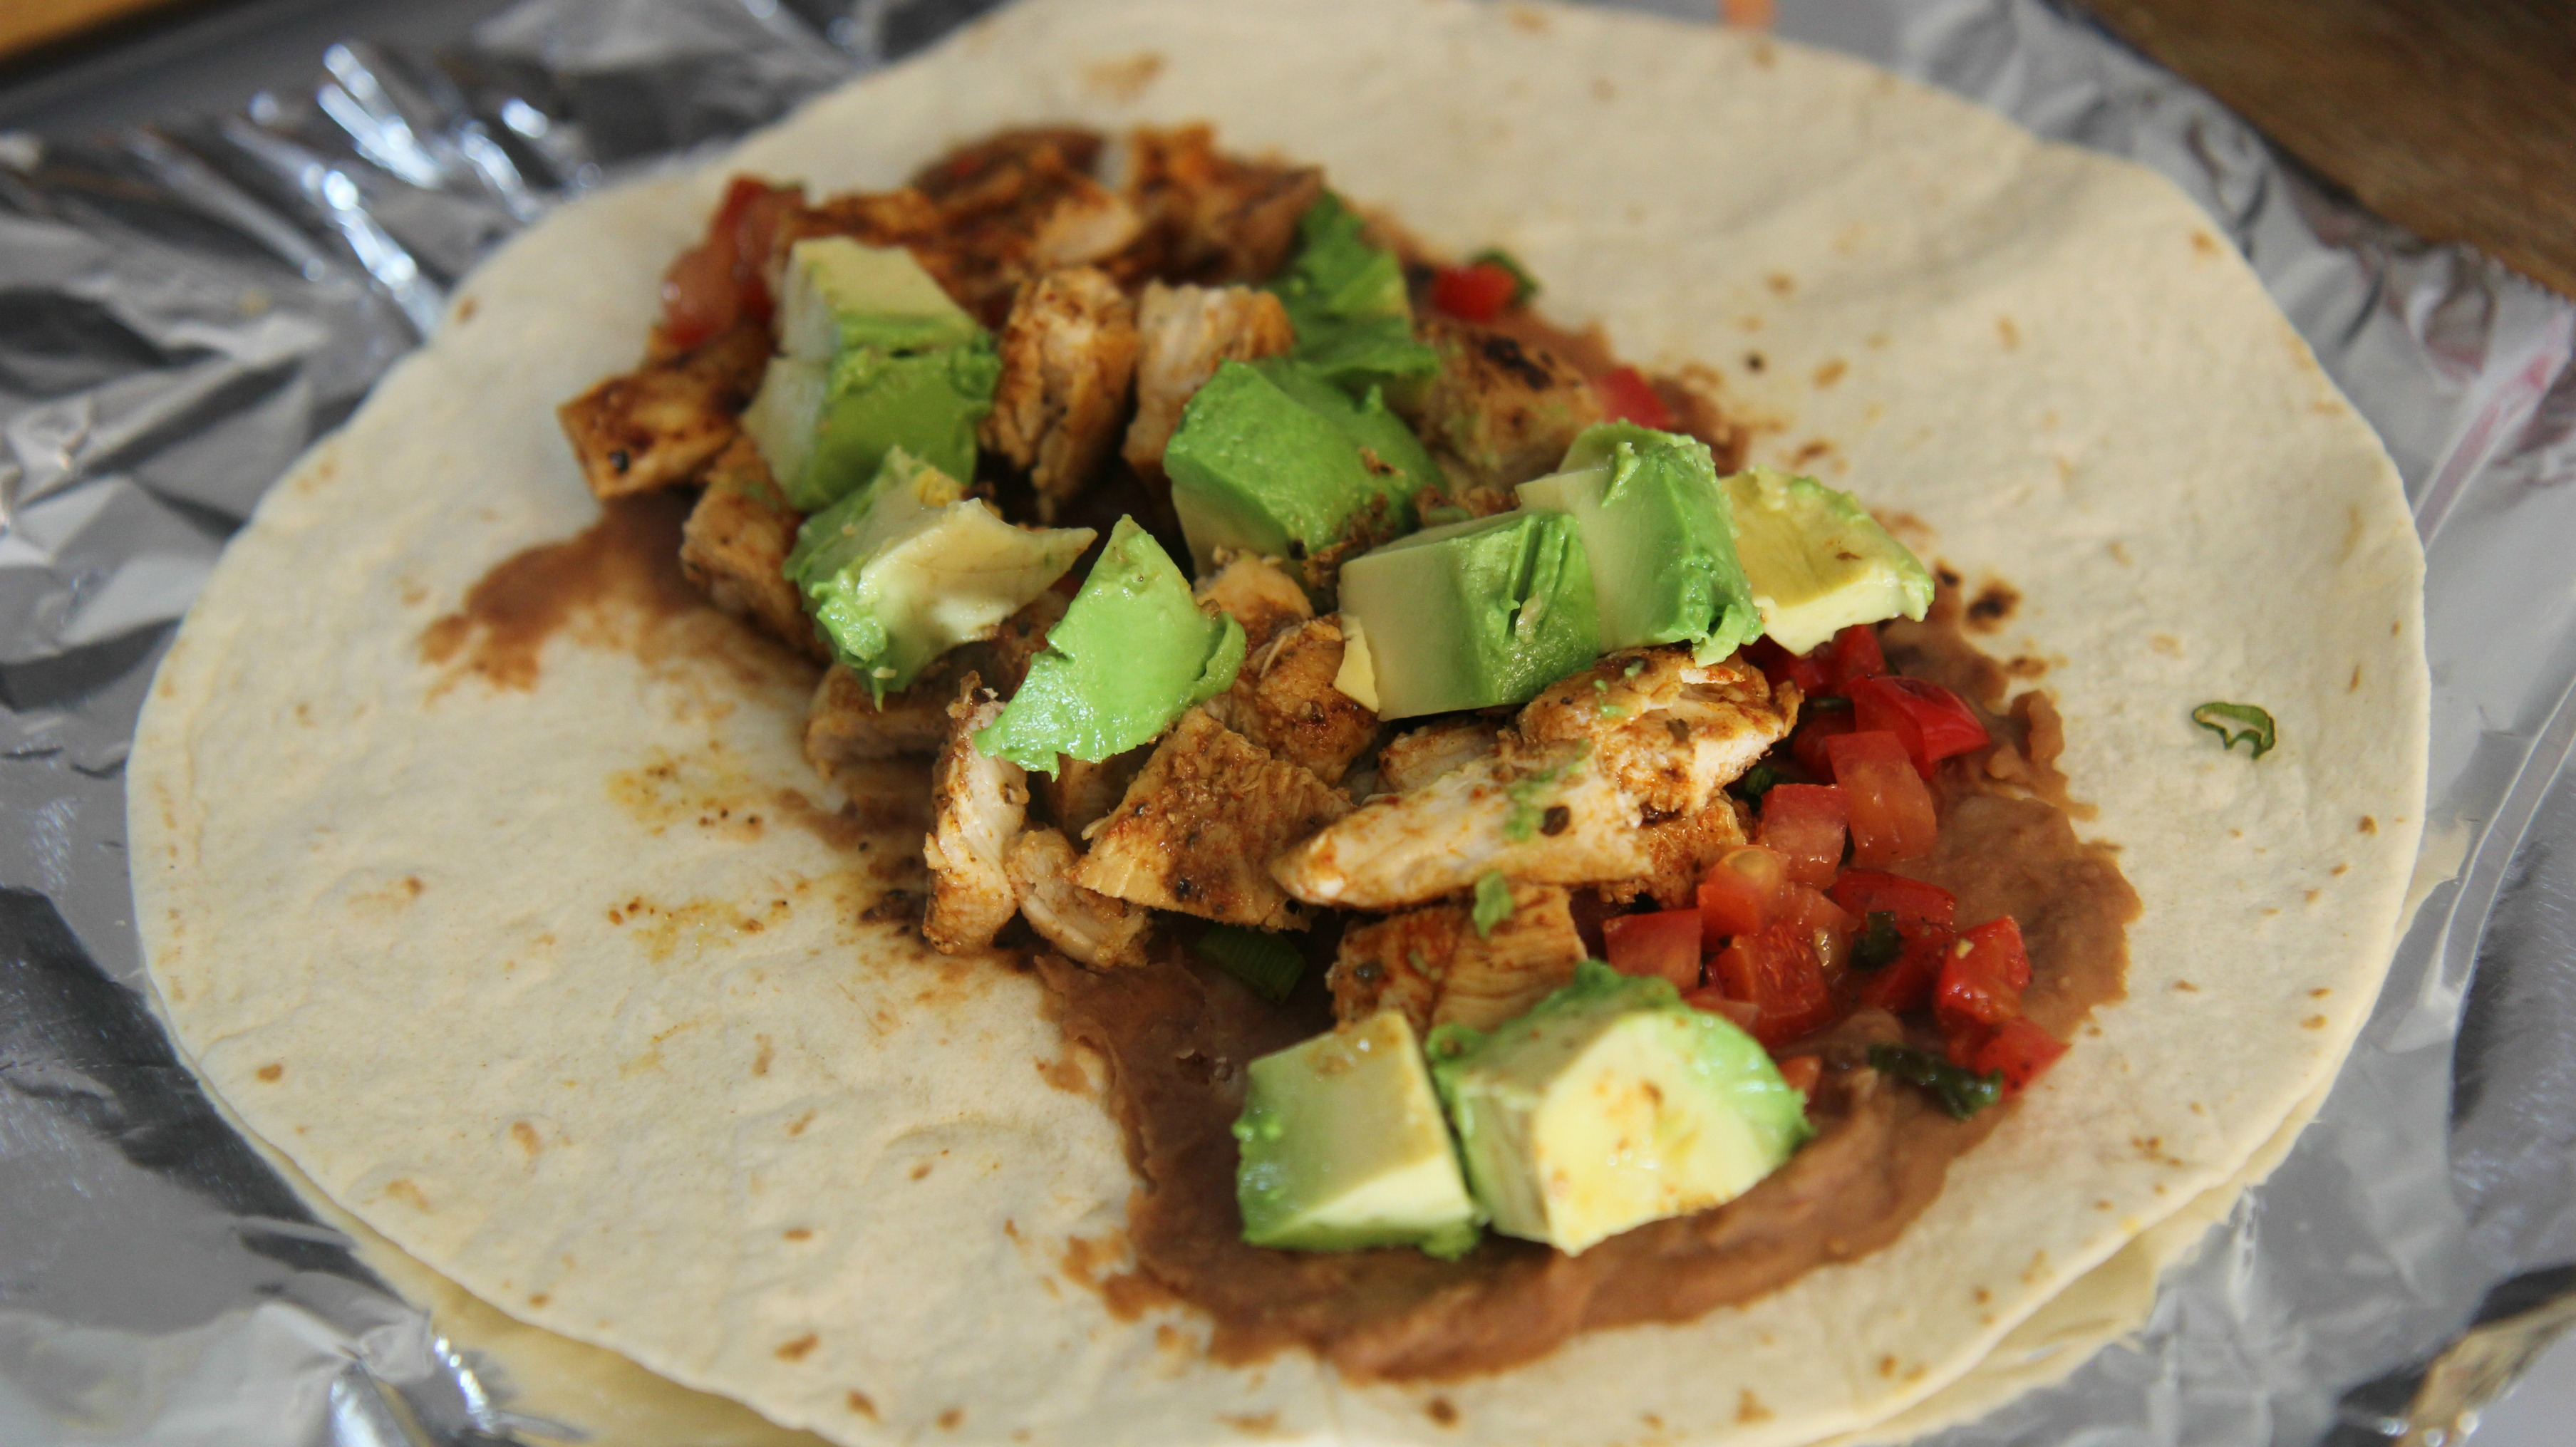 Add the chicken to a tortilla with refried beans, avocado chunks and some tomatoes.